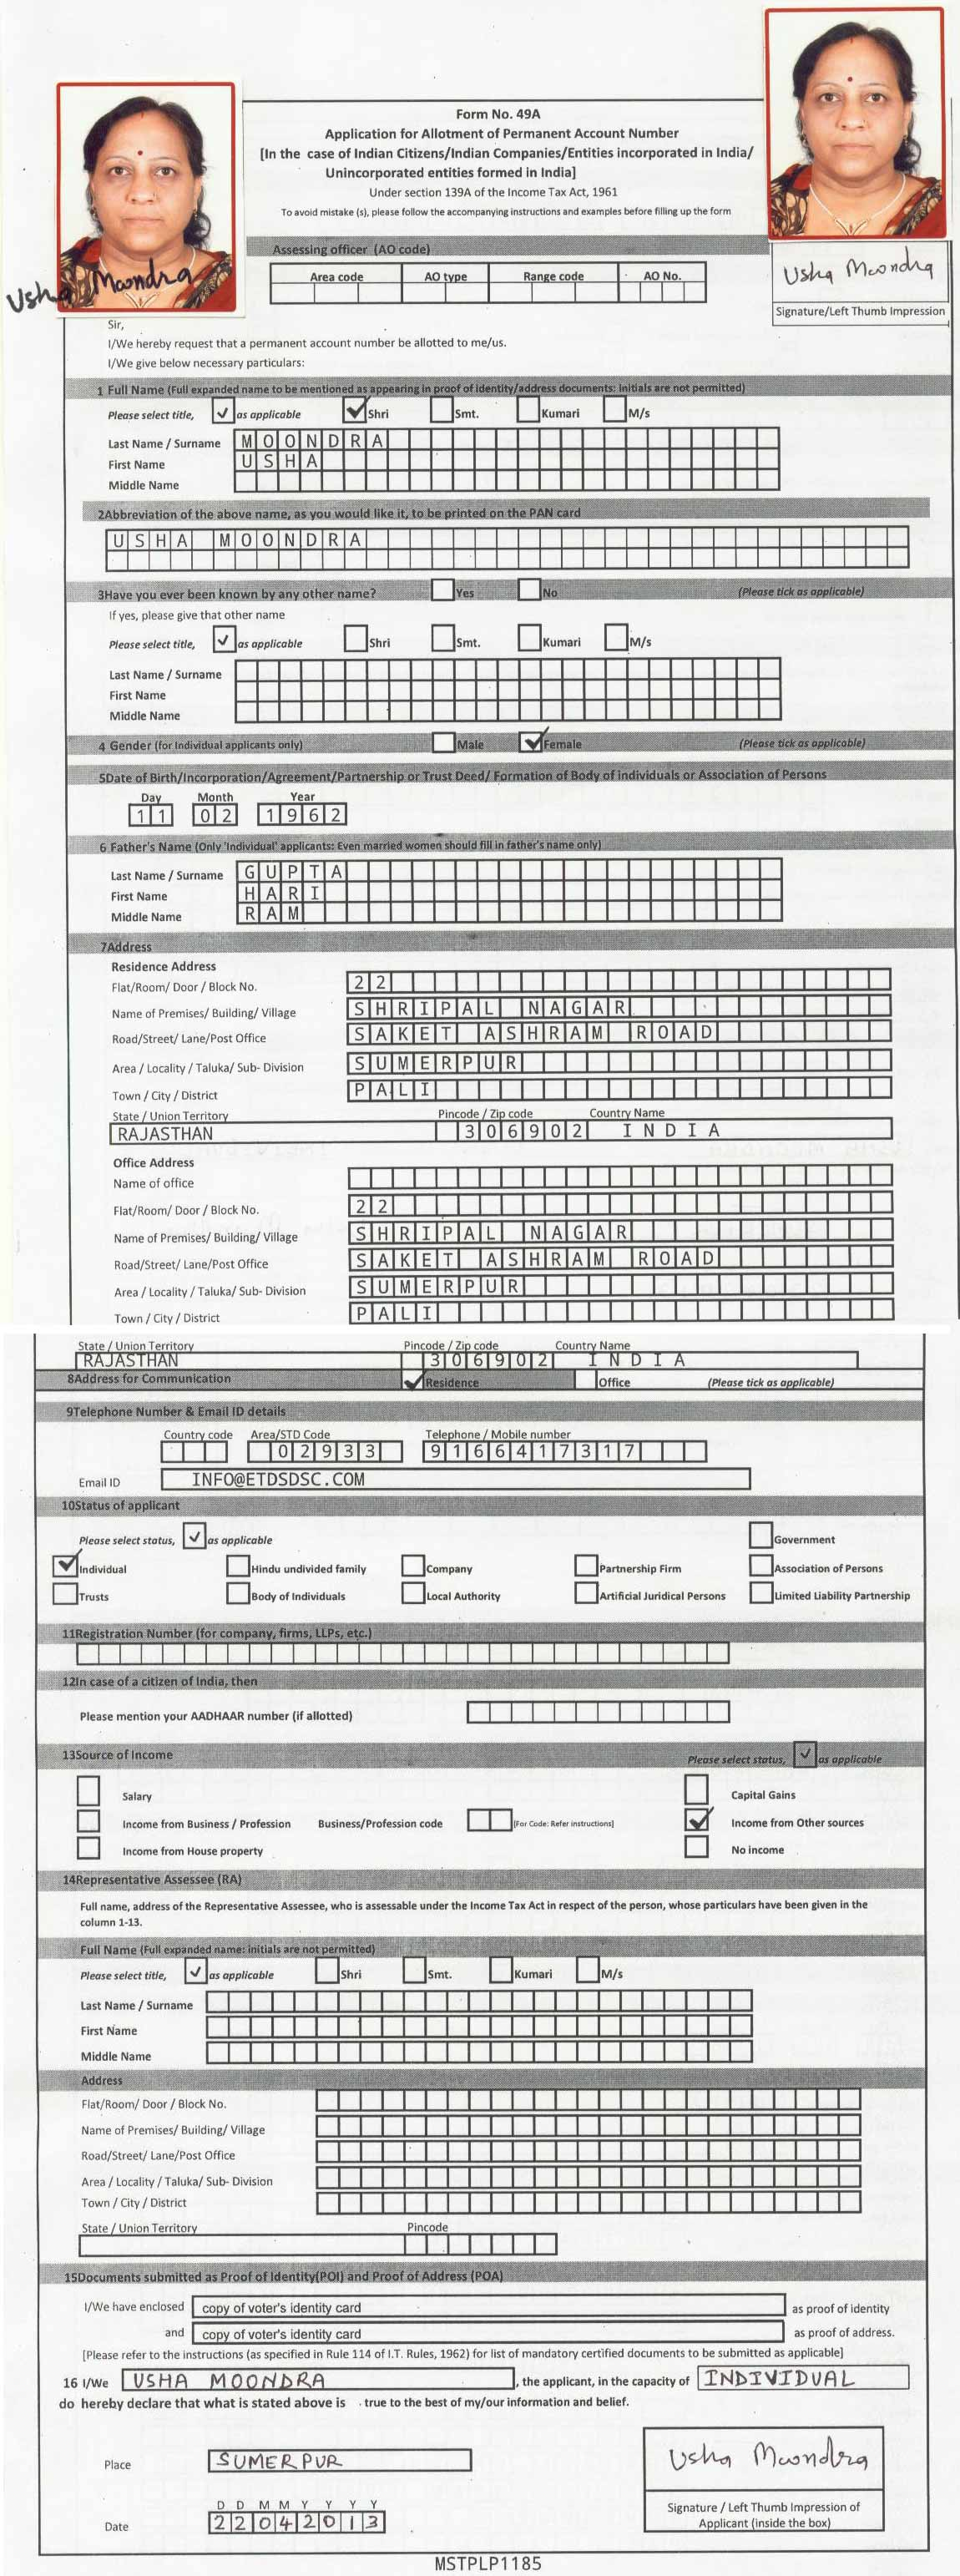 filled sample form of pan application pan card status online filled sample form of pan application